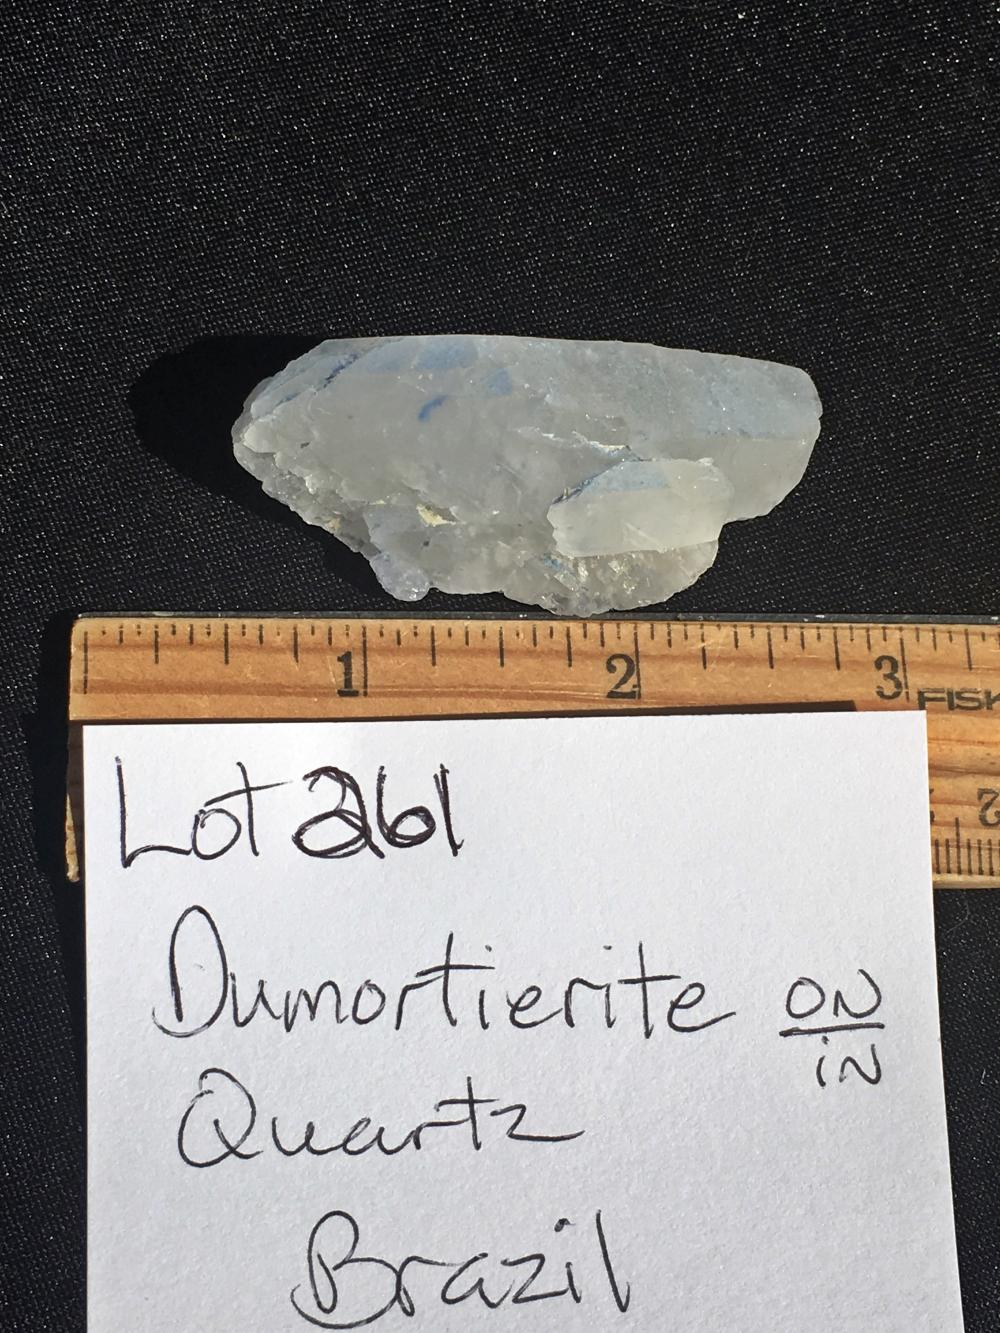 Lot 261: Quartz, Rock, Crystal, Natural, Collectible, Mineral, Specimen